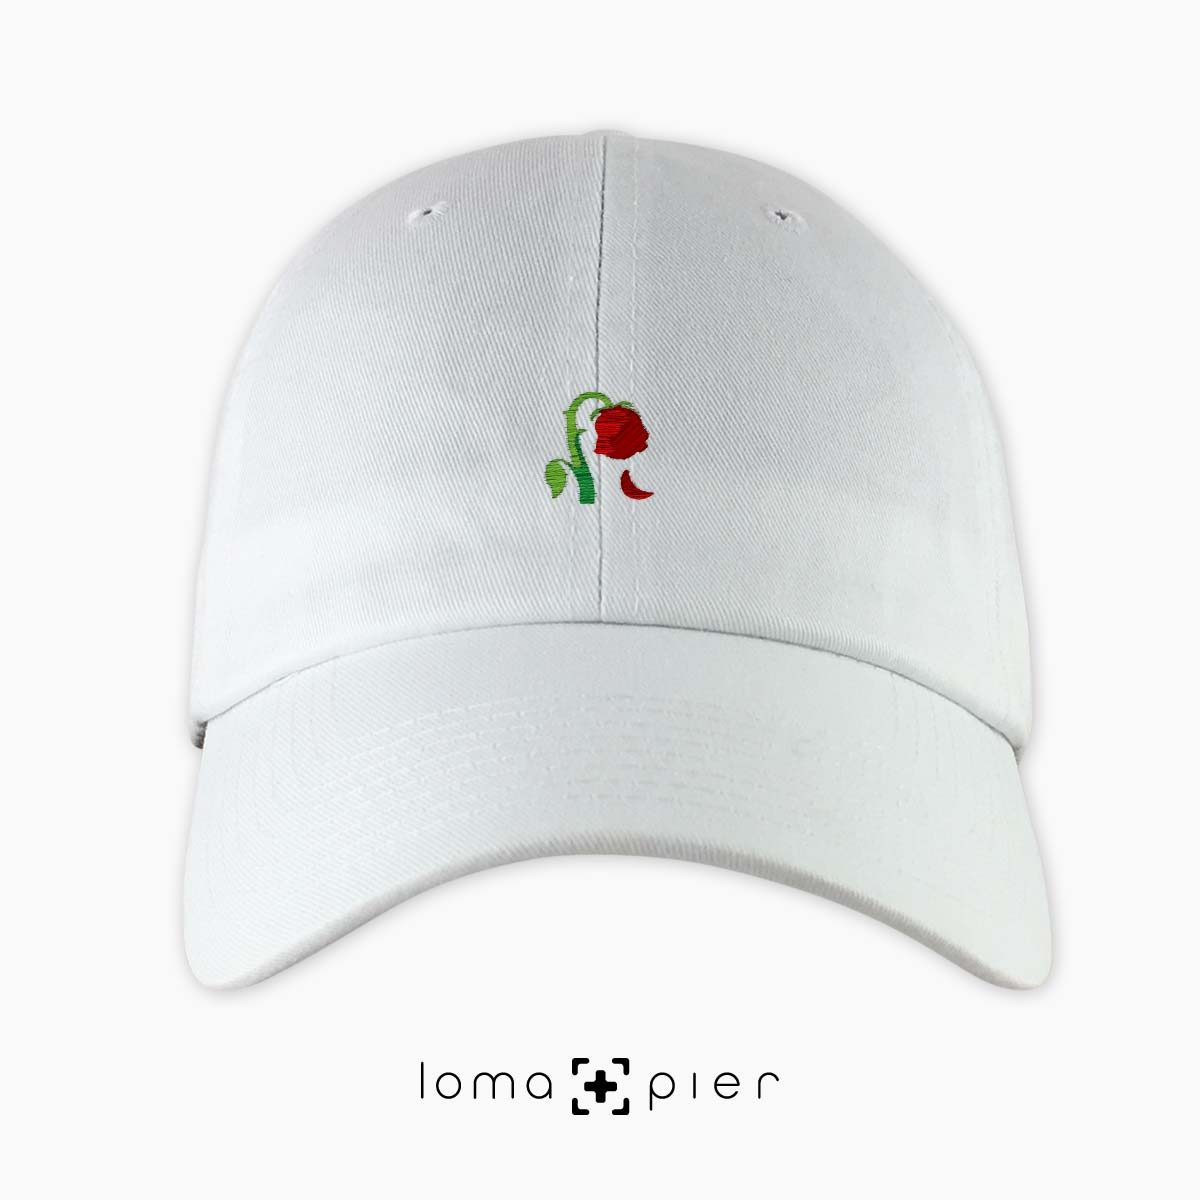 DYING ROSE EMOJI icon embroidered on a white unstructured dad hat by loma+pier hat store made in the USA